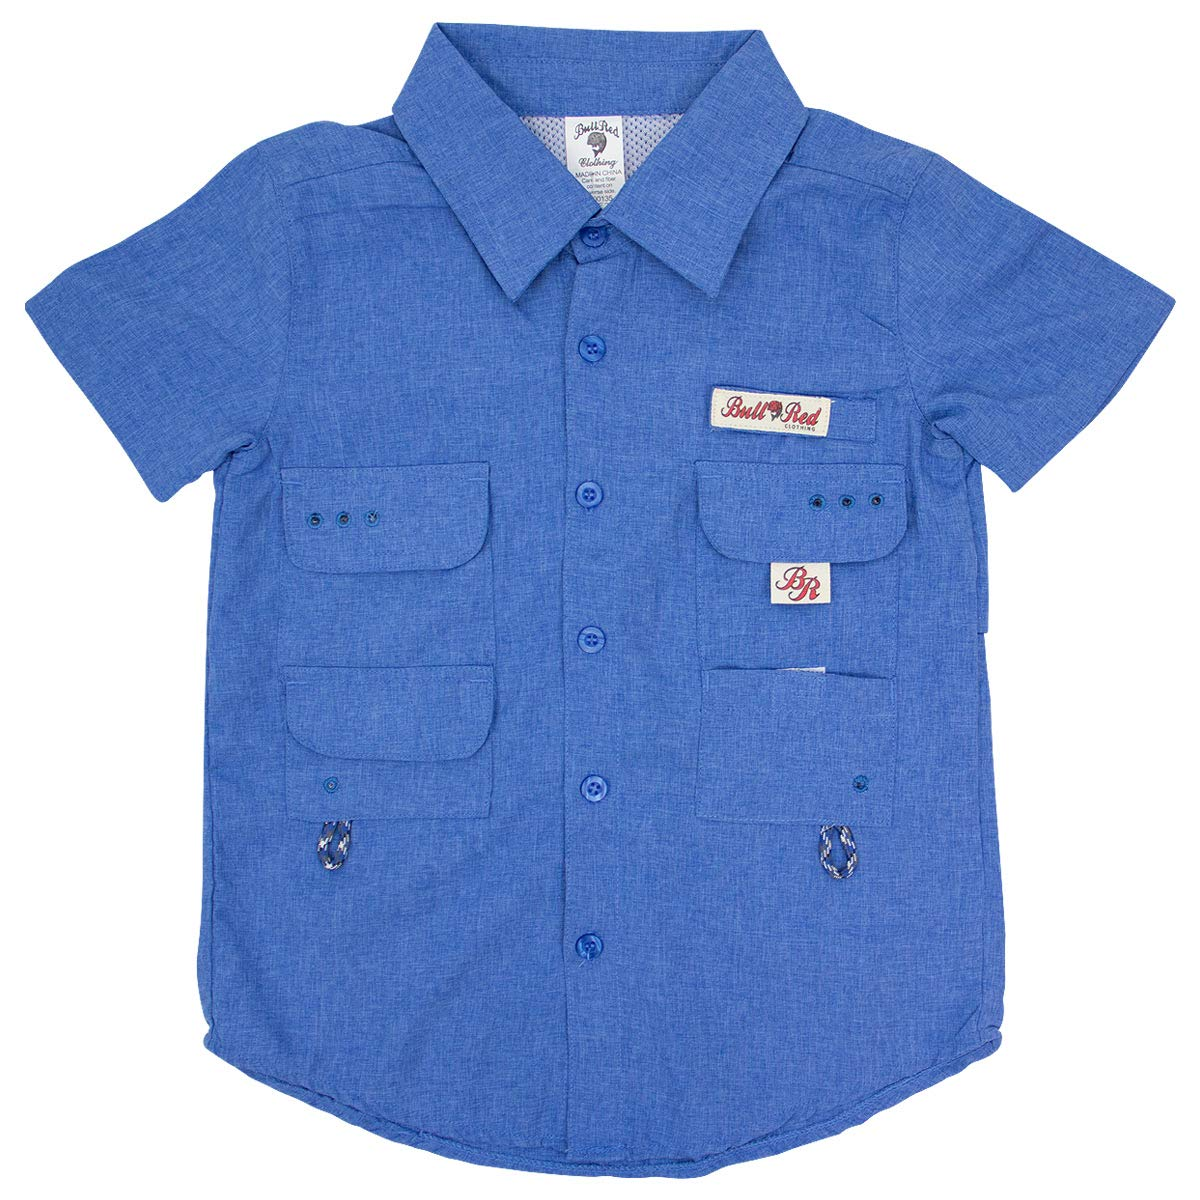 BullRed Toddlers DK Blue PFG Vented Fishing Shirt Button Up, 2T